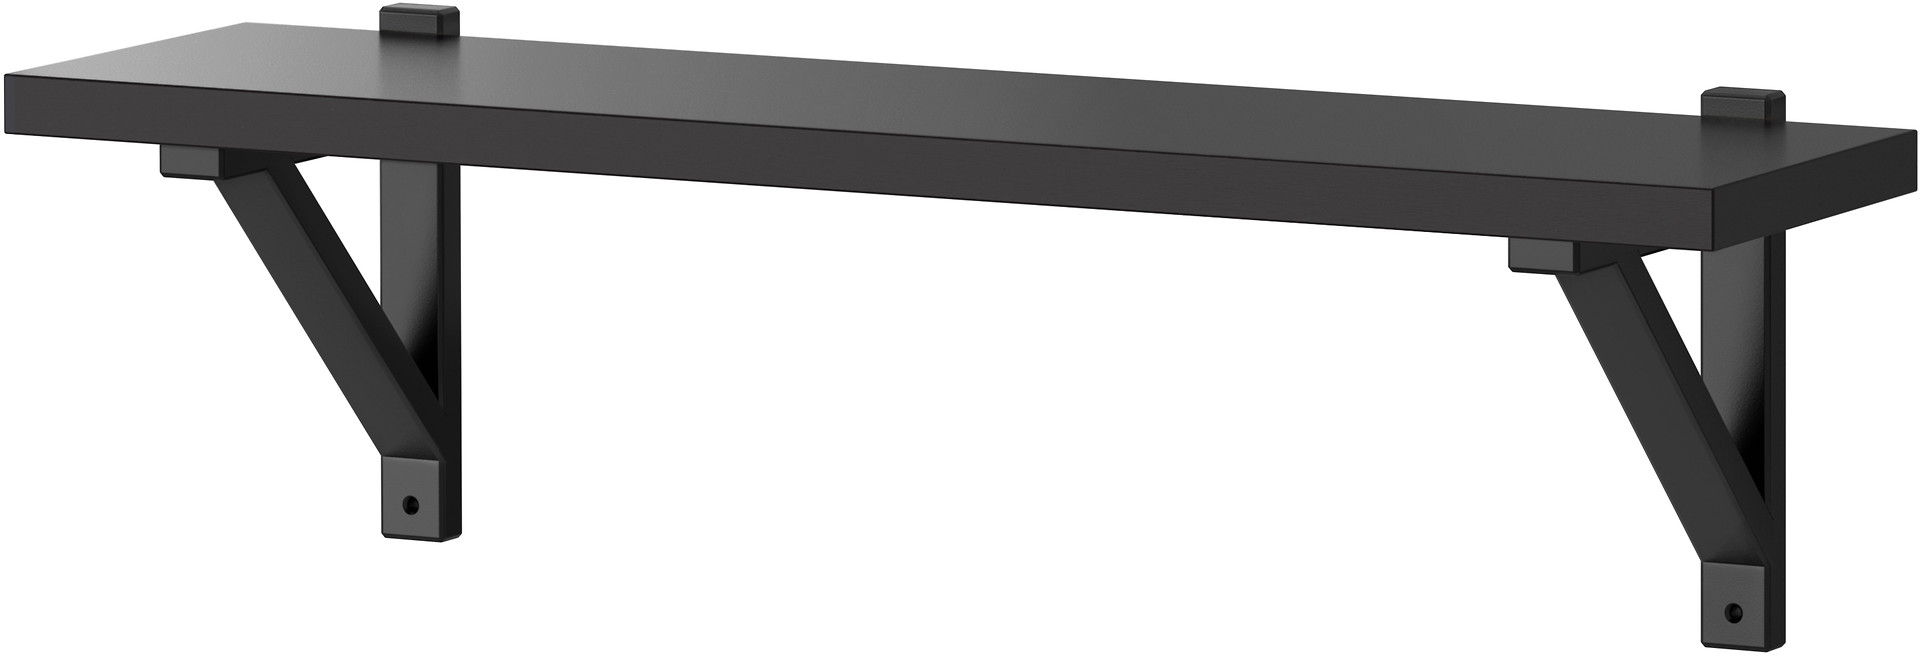 EKBY JÄRPEN / EKBY VALTER Wall shelf - black-brown/bla​ck - IKEA